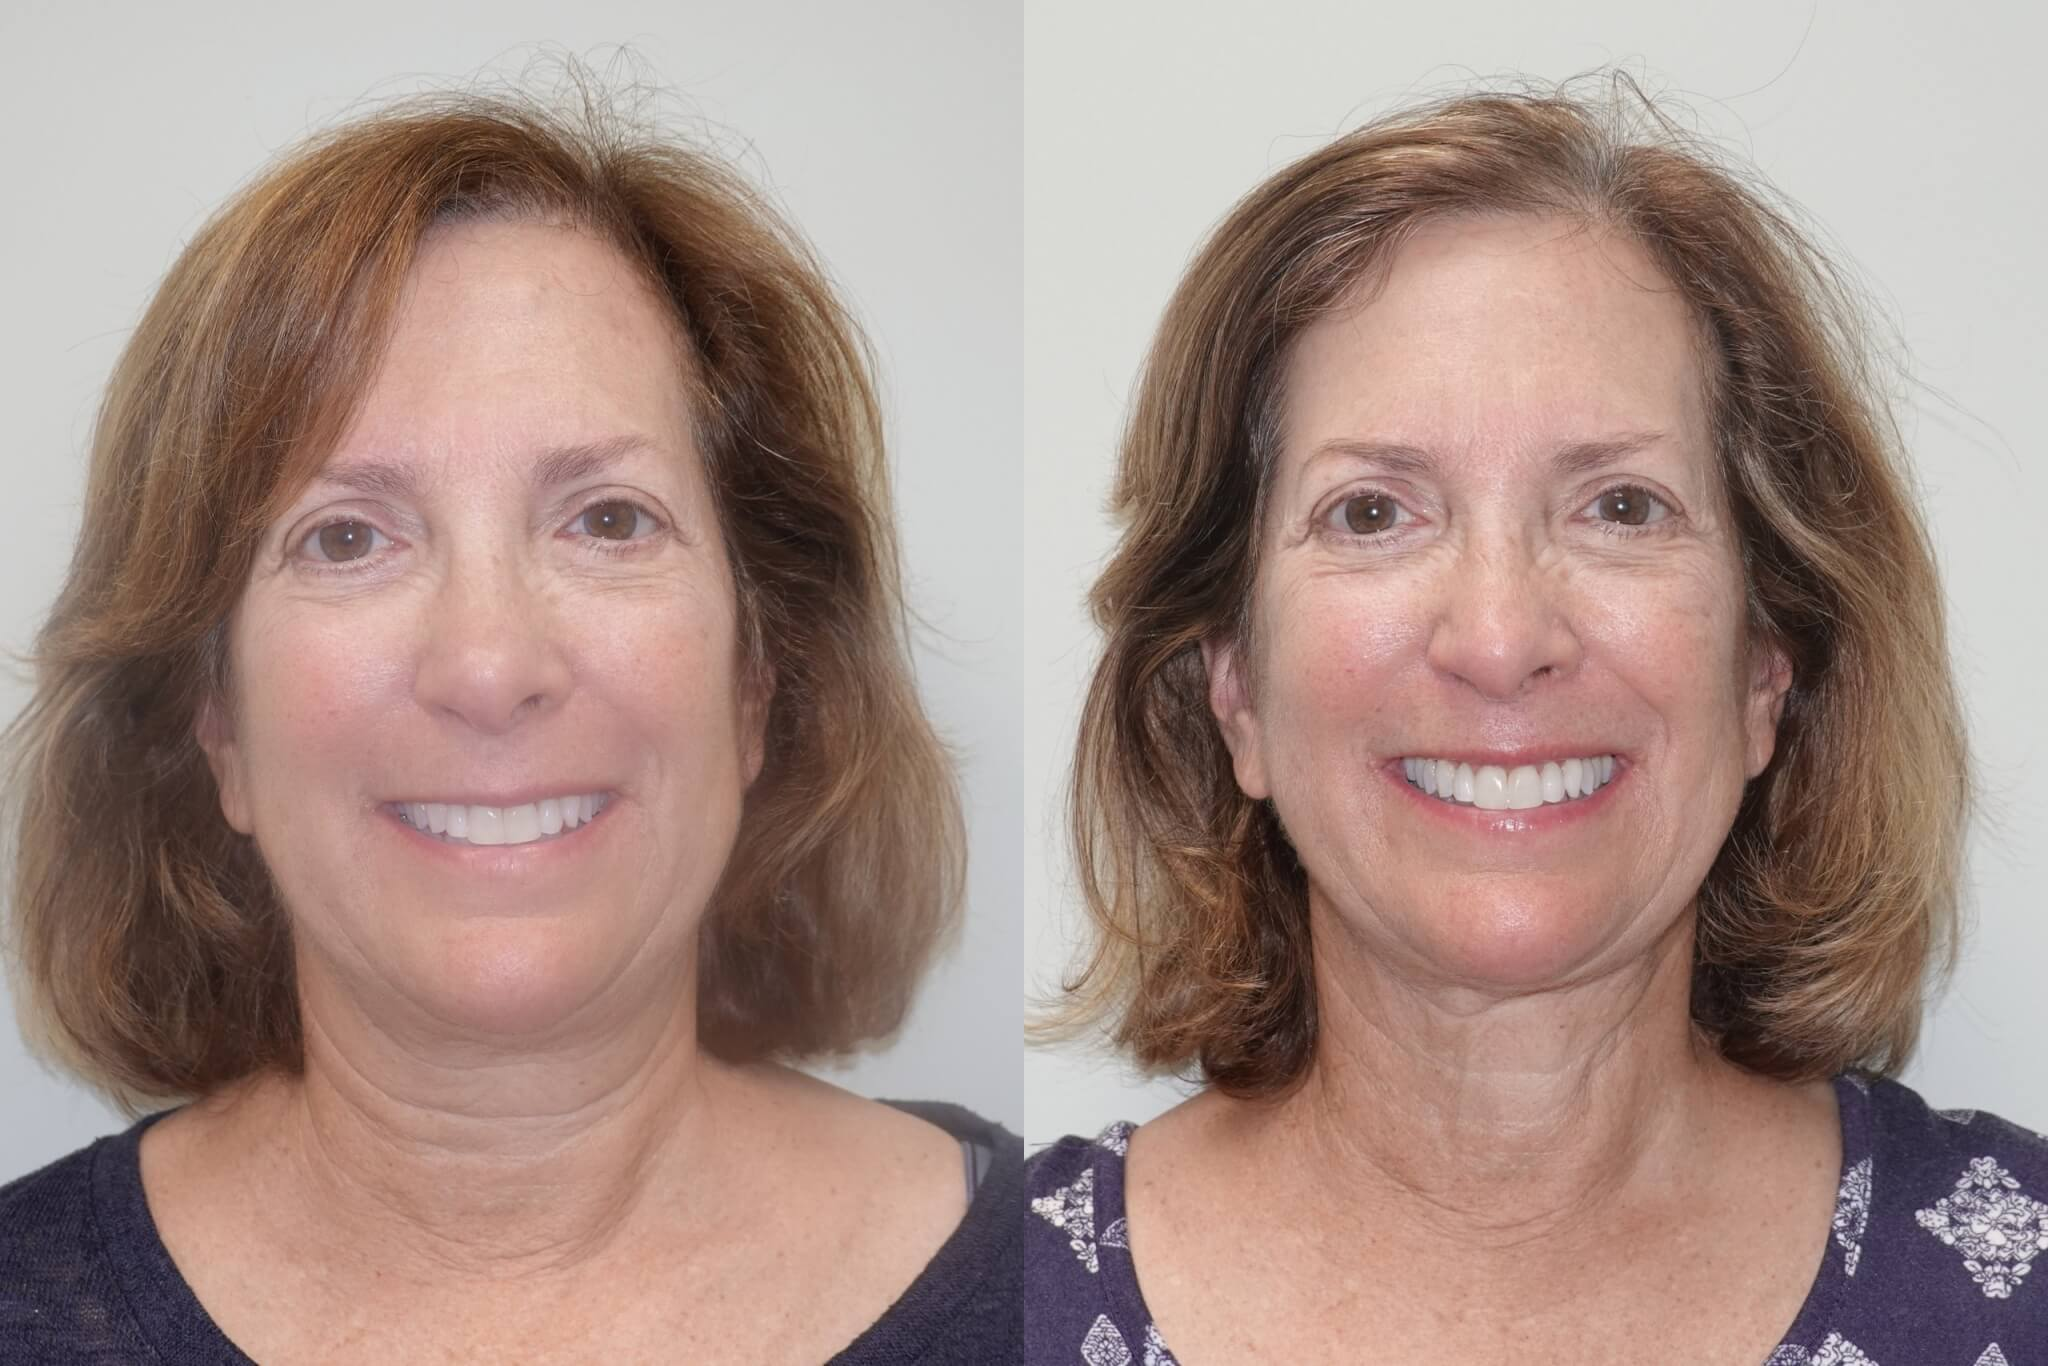 Before and after 6-months liposuction of the lower face and neck and Renuvion